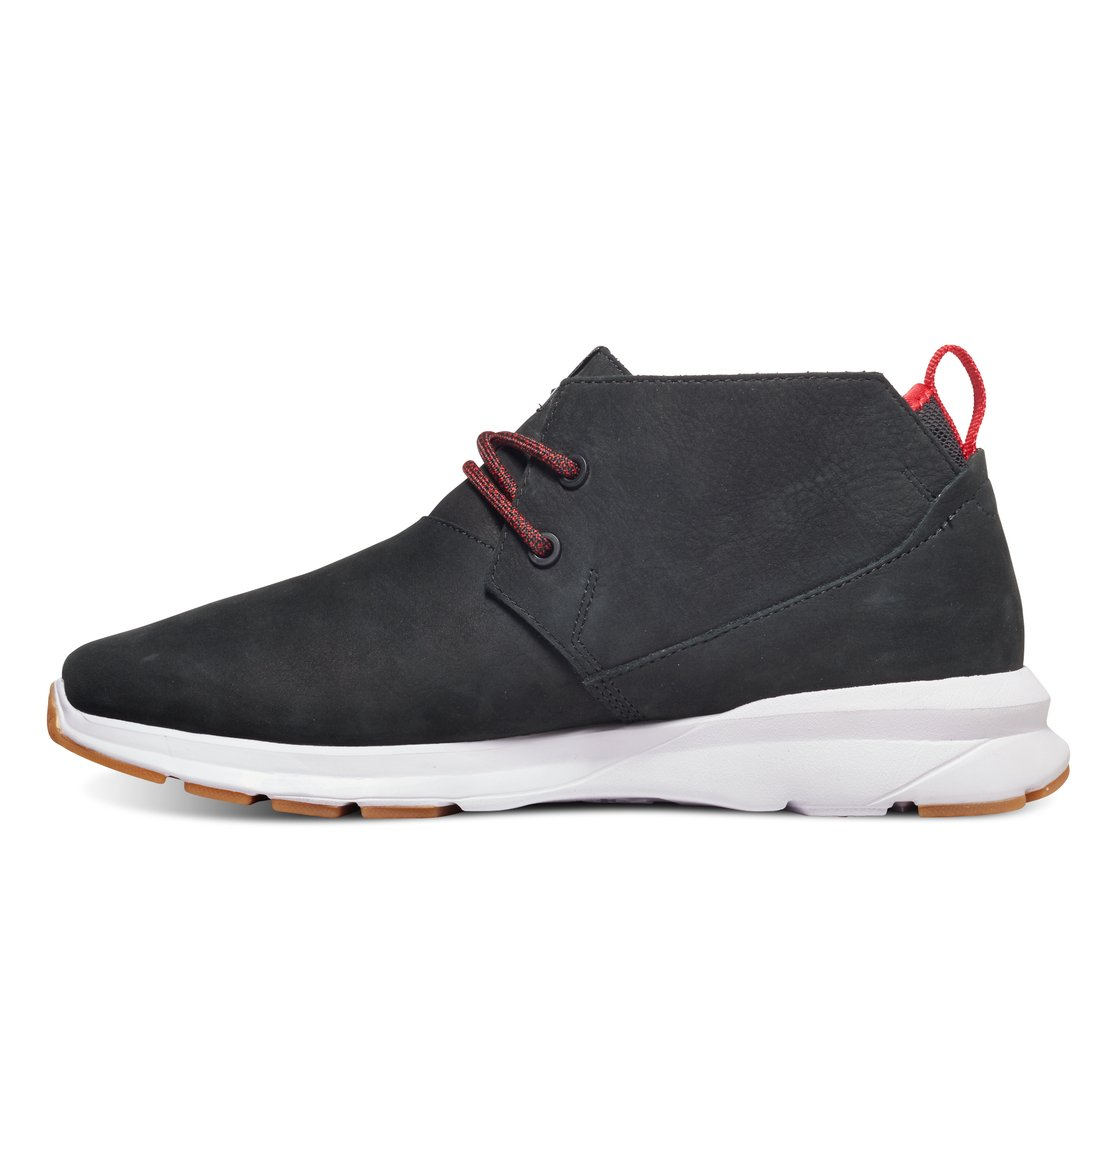 competitive price 31568 8f372 Dc Shoes Zapato Adys100367 Ashlar Media Hombres 2 Le Bota Z0wvxq